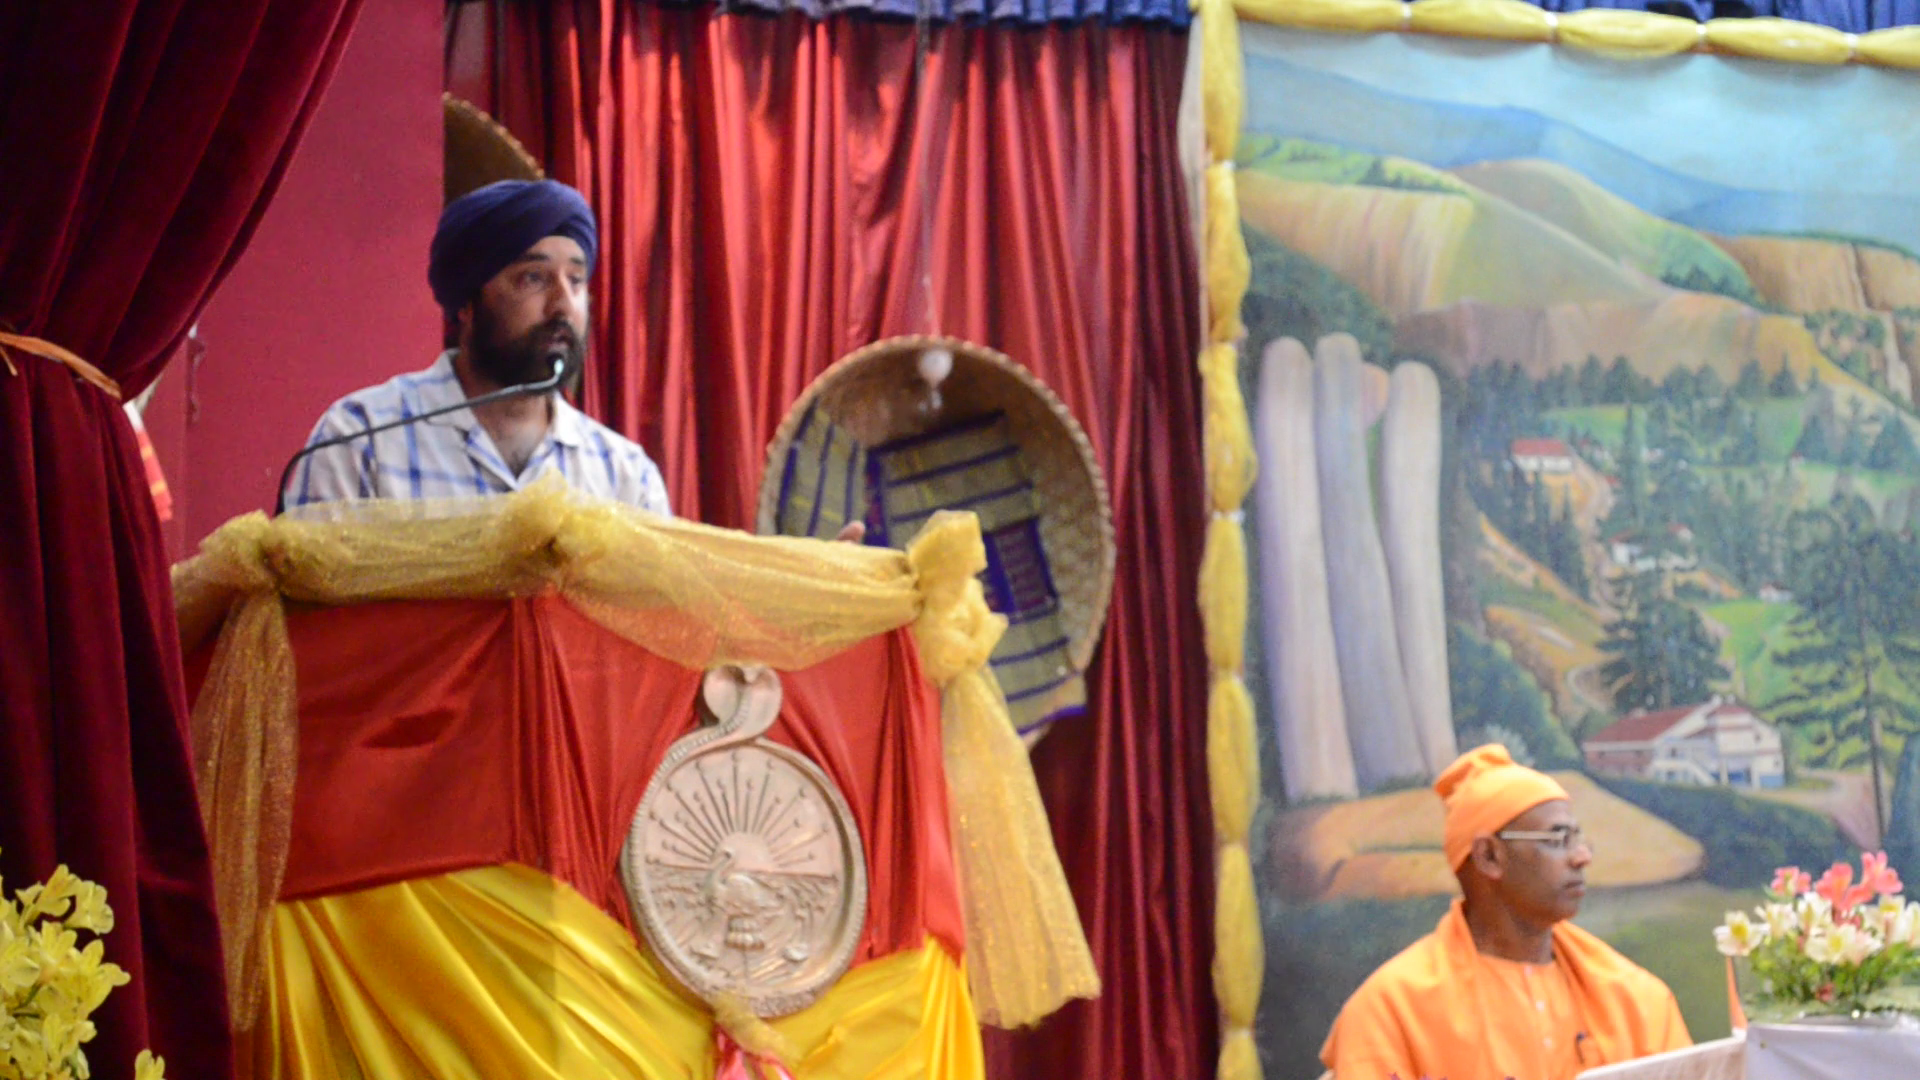 Janak Preet Singh presenting during te event on Unity in Diversity through food, dress and culture at Rama Krishna Mission, Vivekananda Cultural Centre, on the occasion of Swami Vivekananda's 150th Birth Anniversary which was celebrated on the 28th of April